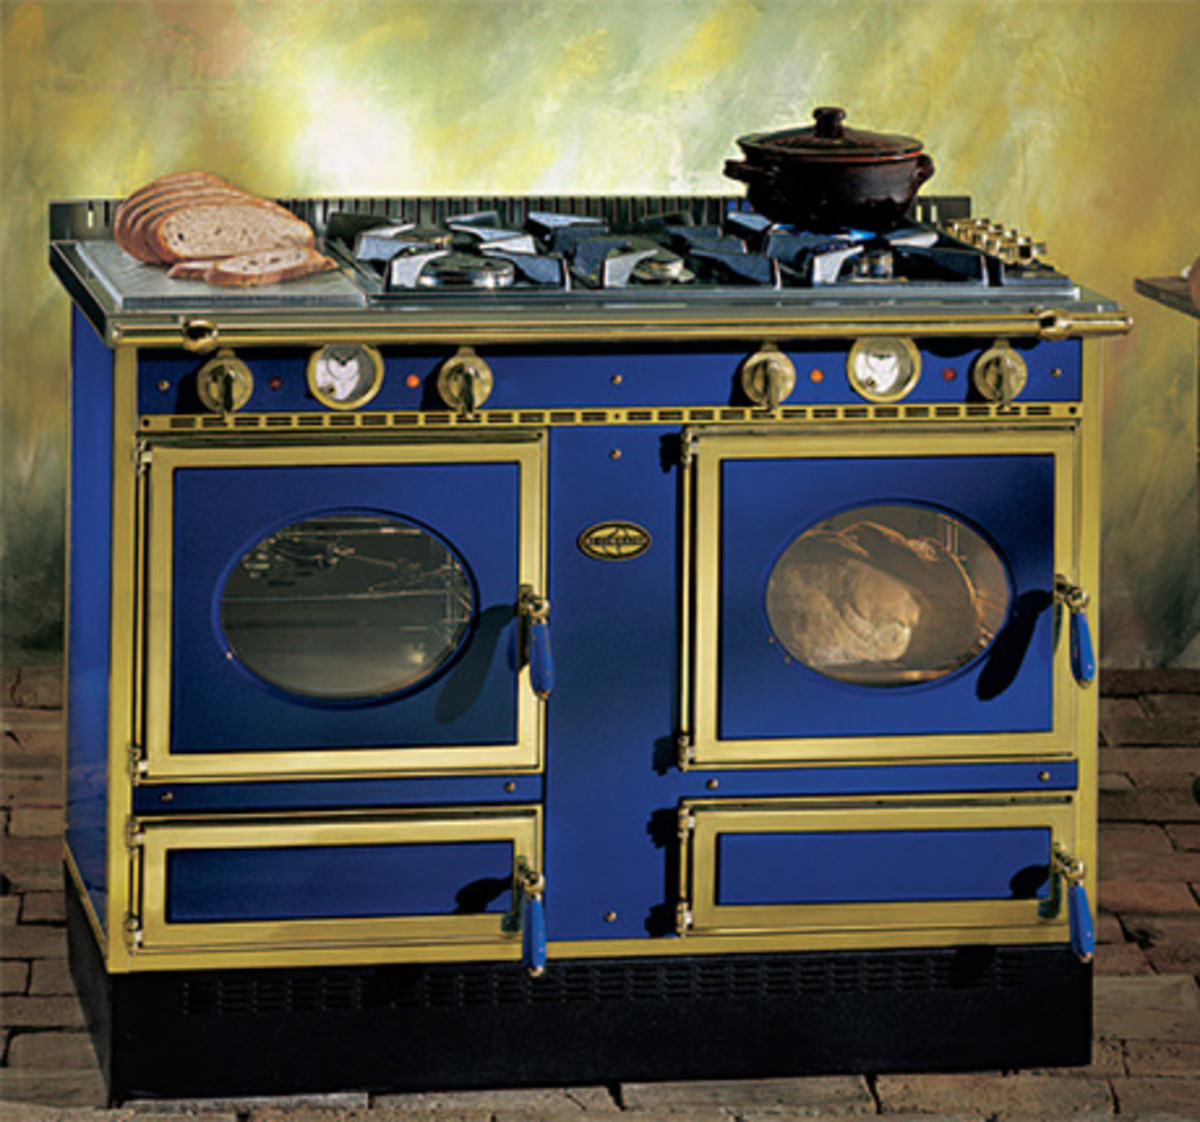 Vintage Kitchen Appliances -its a Whole New World